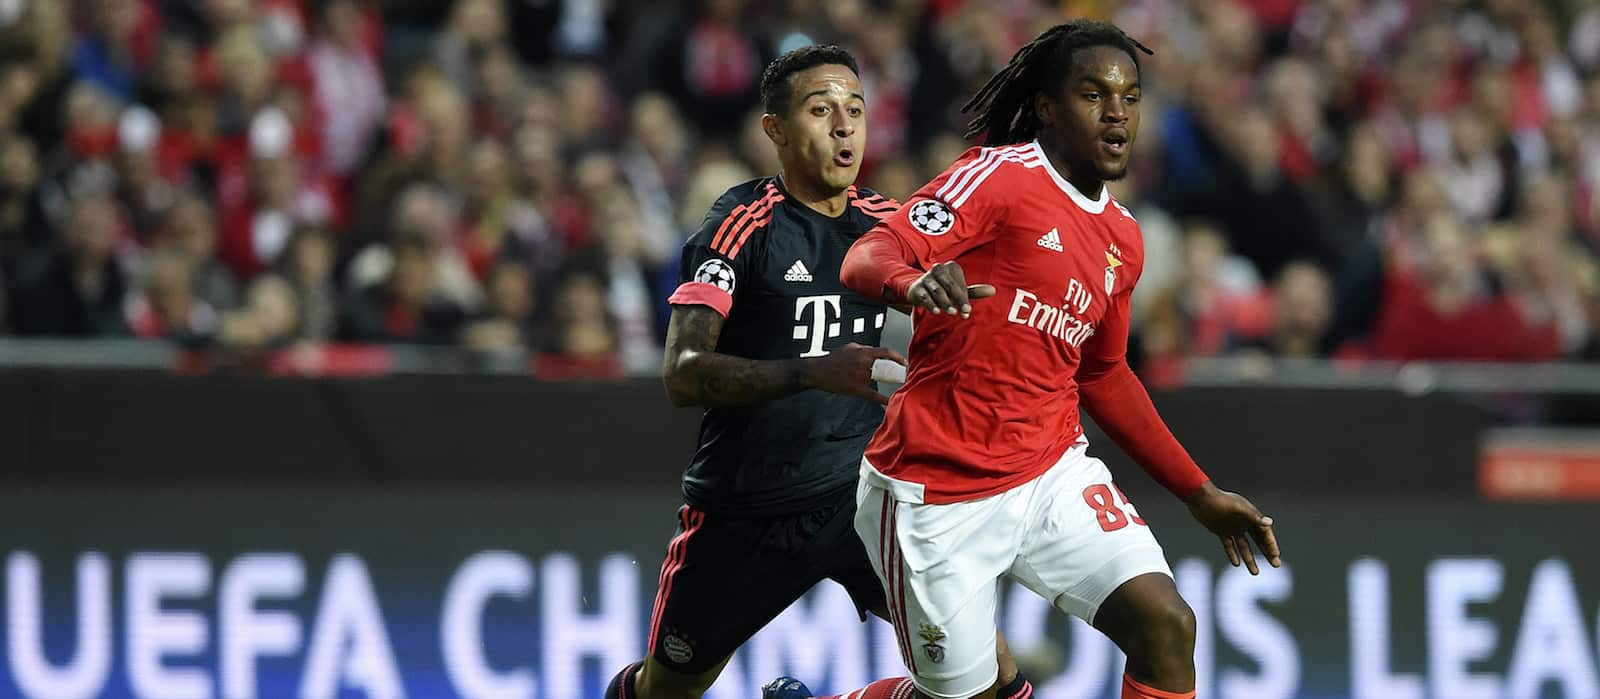 Bayern Munich CEO Karl-Heinz Rummenigge provides update Renato Sanches' future